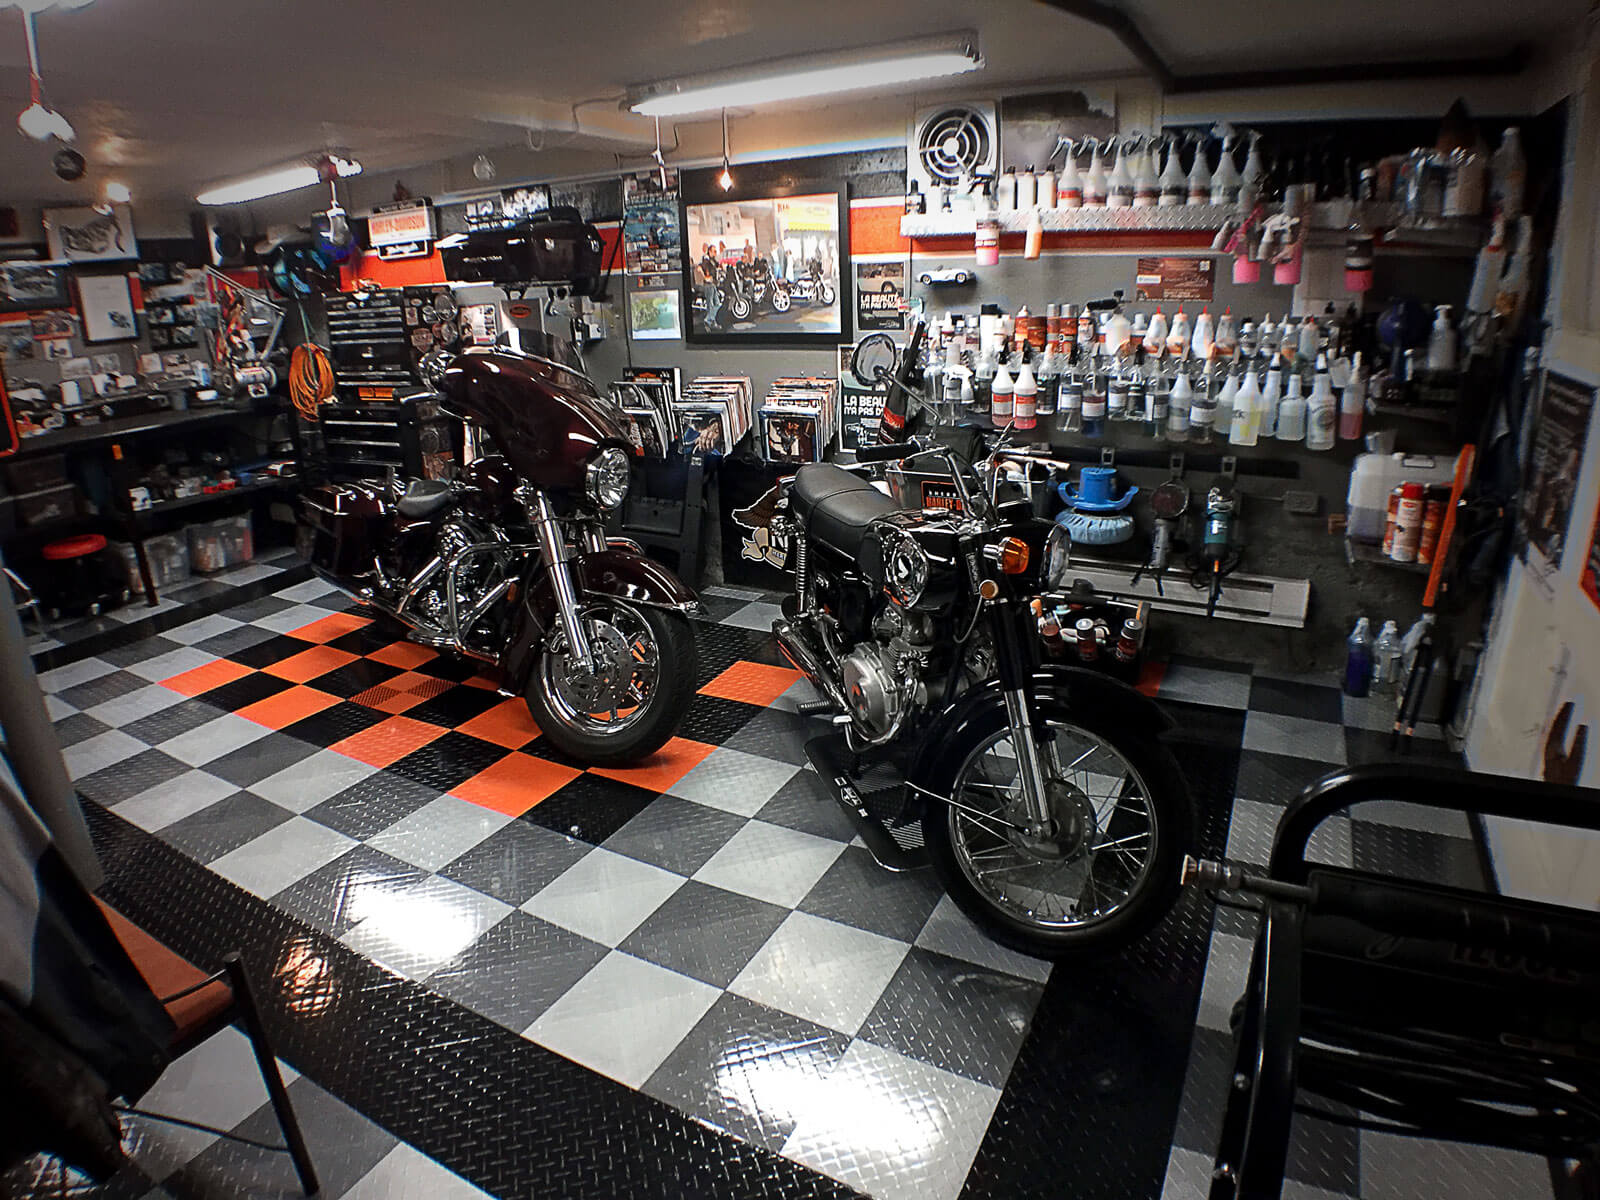 Harley garage in Quebec with high-gloss Diamond TuffShield flooring to match.